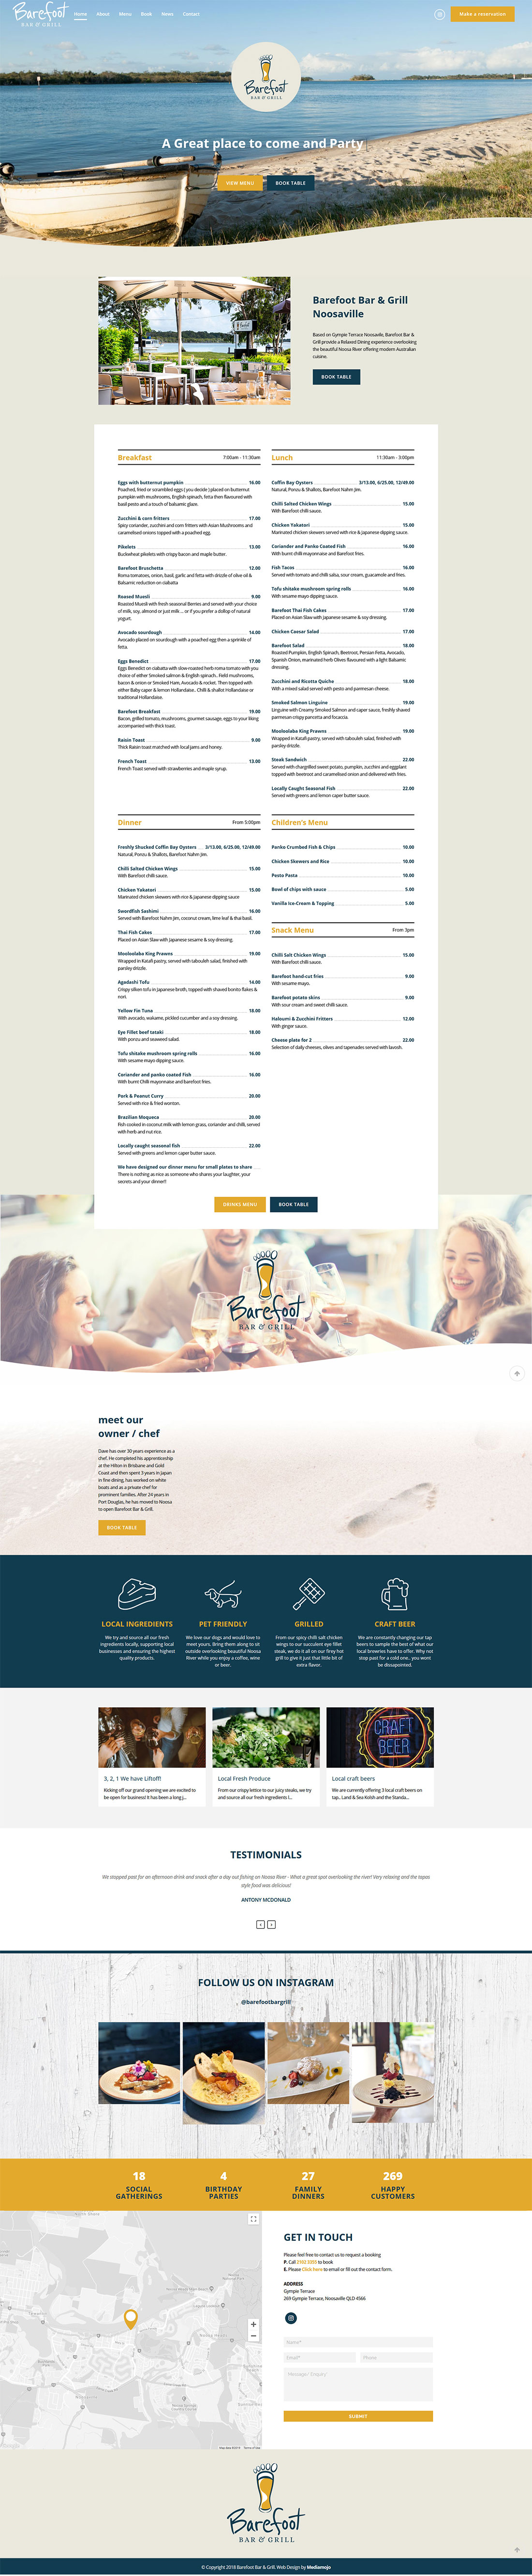 Barefoot Bar & Grill website design